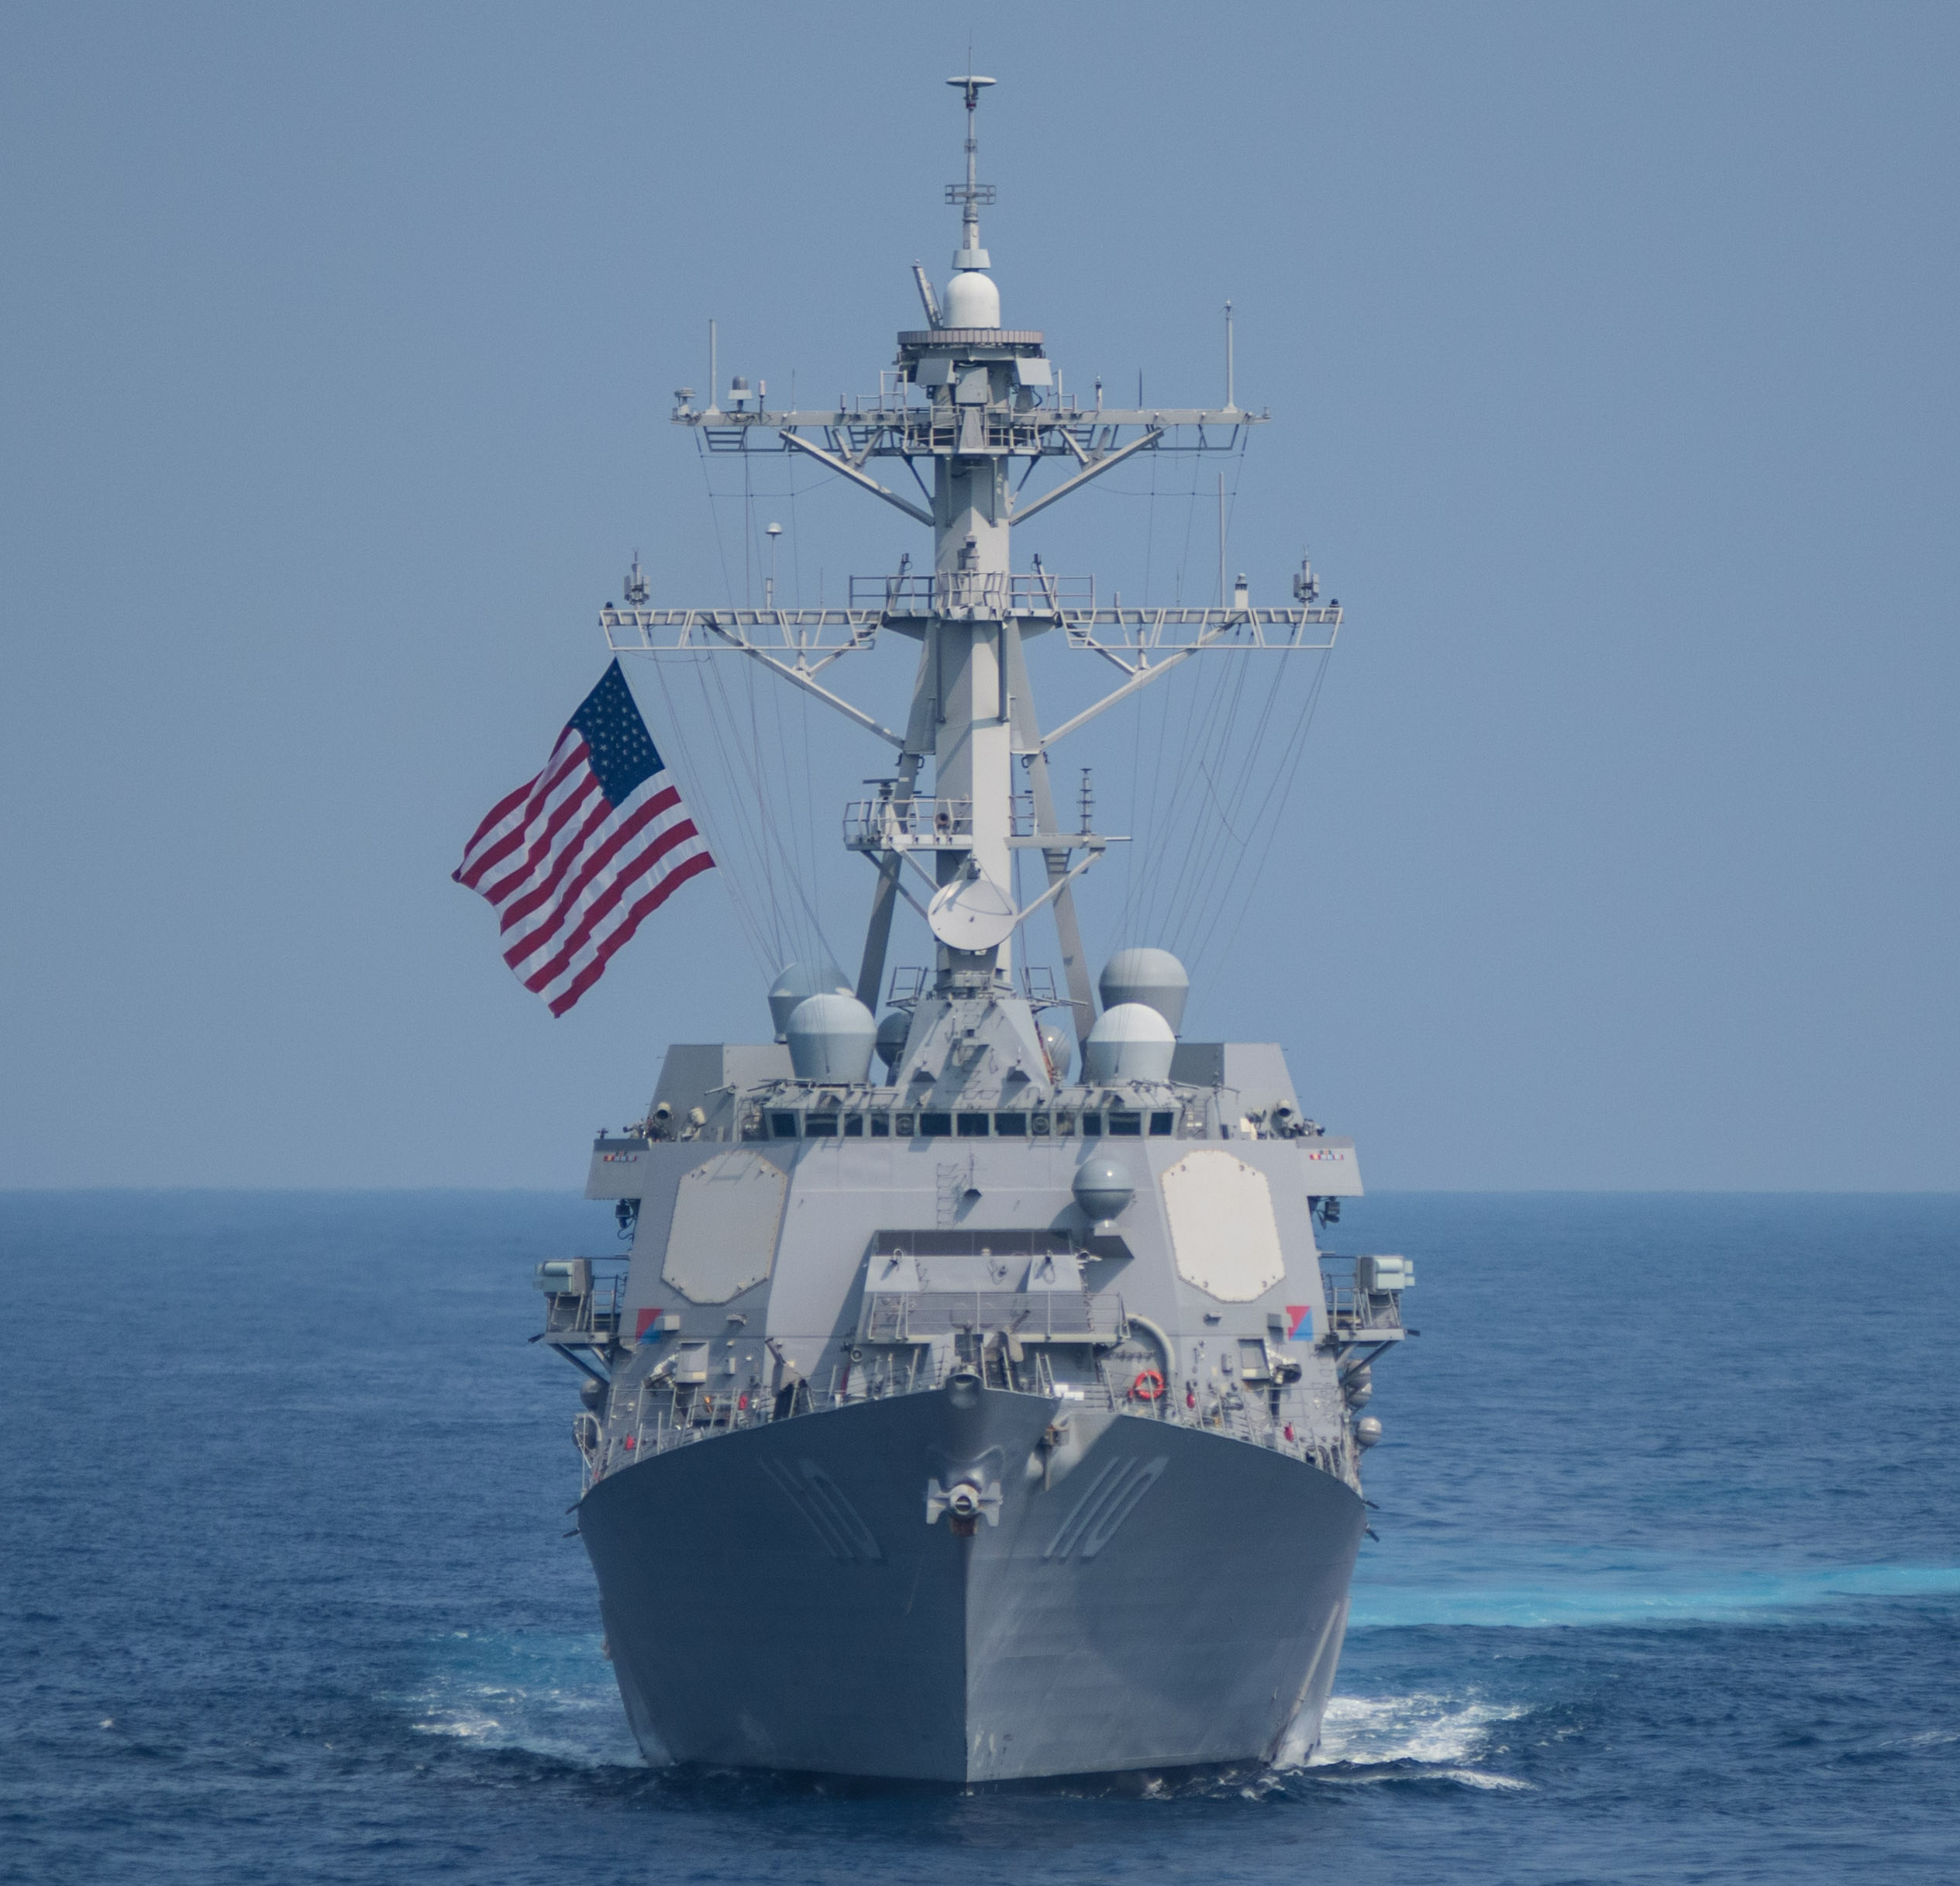 USS William P. Lawrence (DDG-110) transits the Philippine Sea on March 30, 2016. US Navy Photo